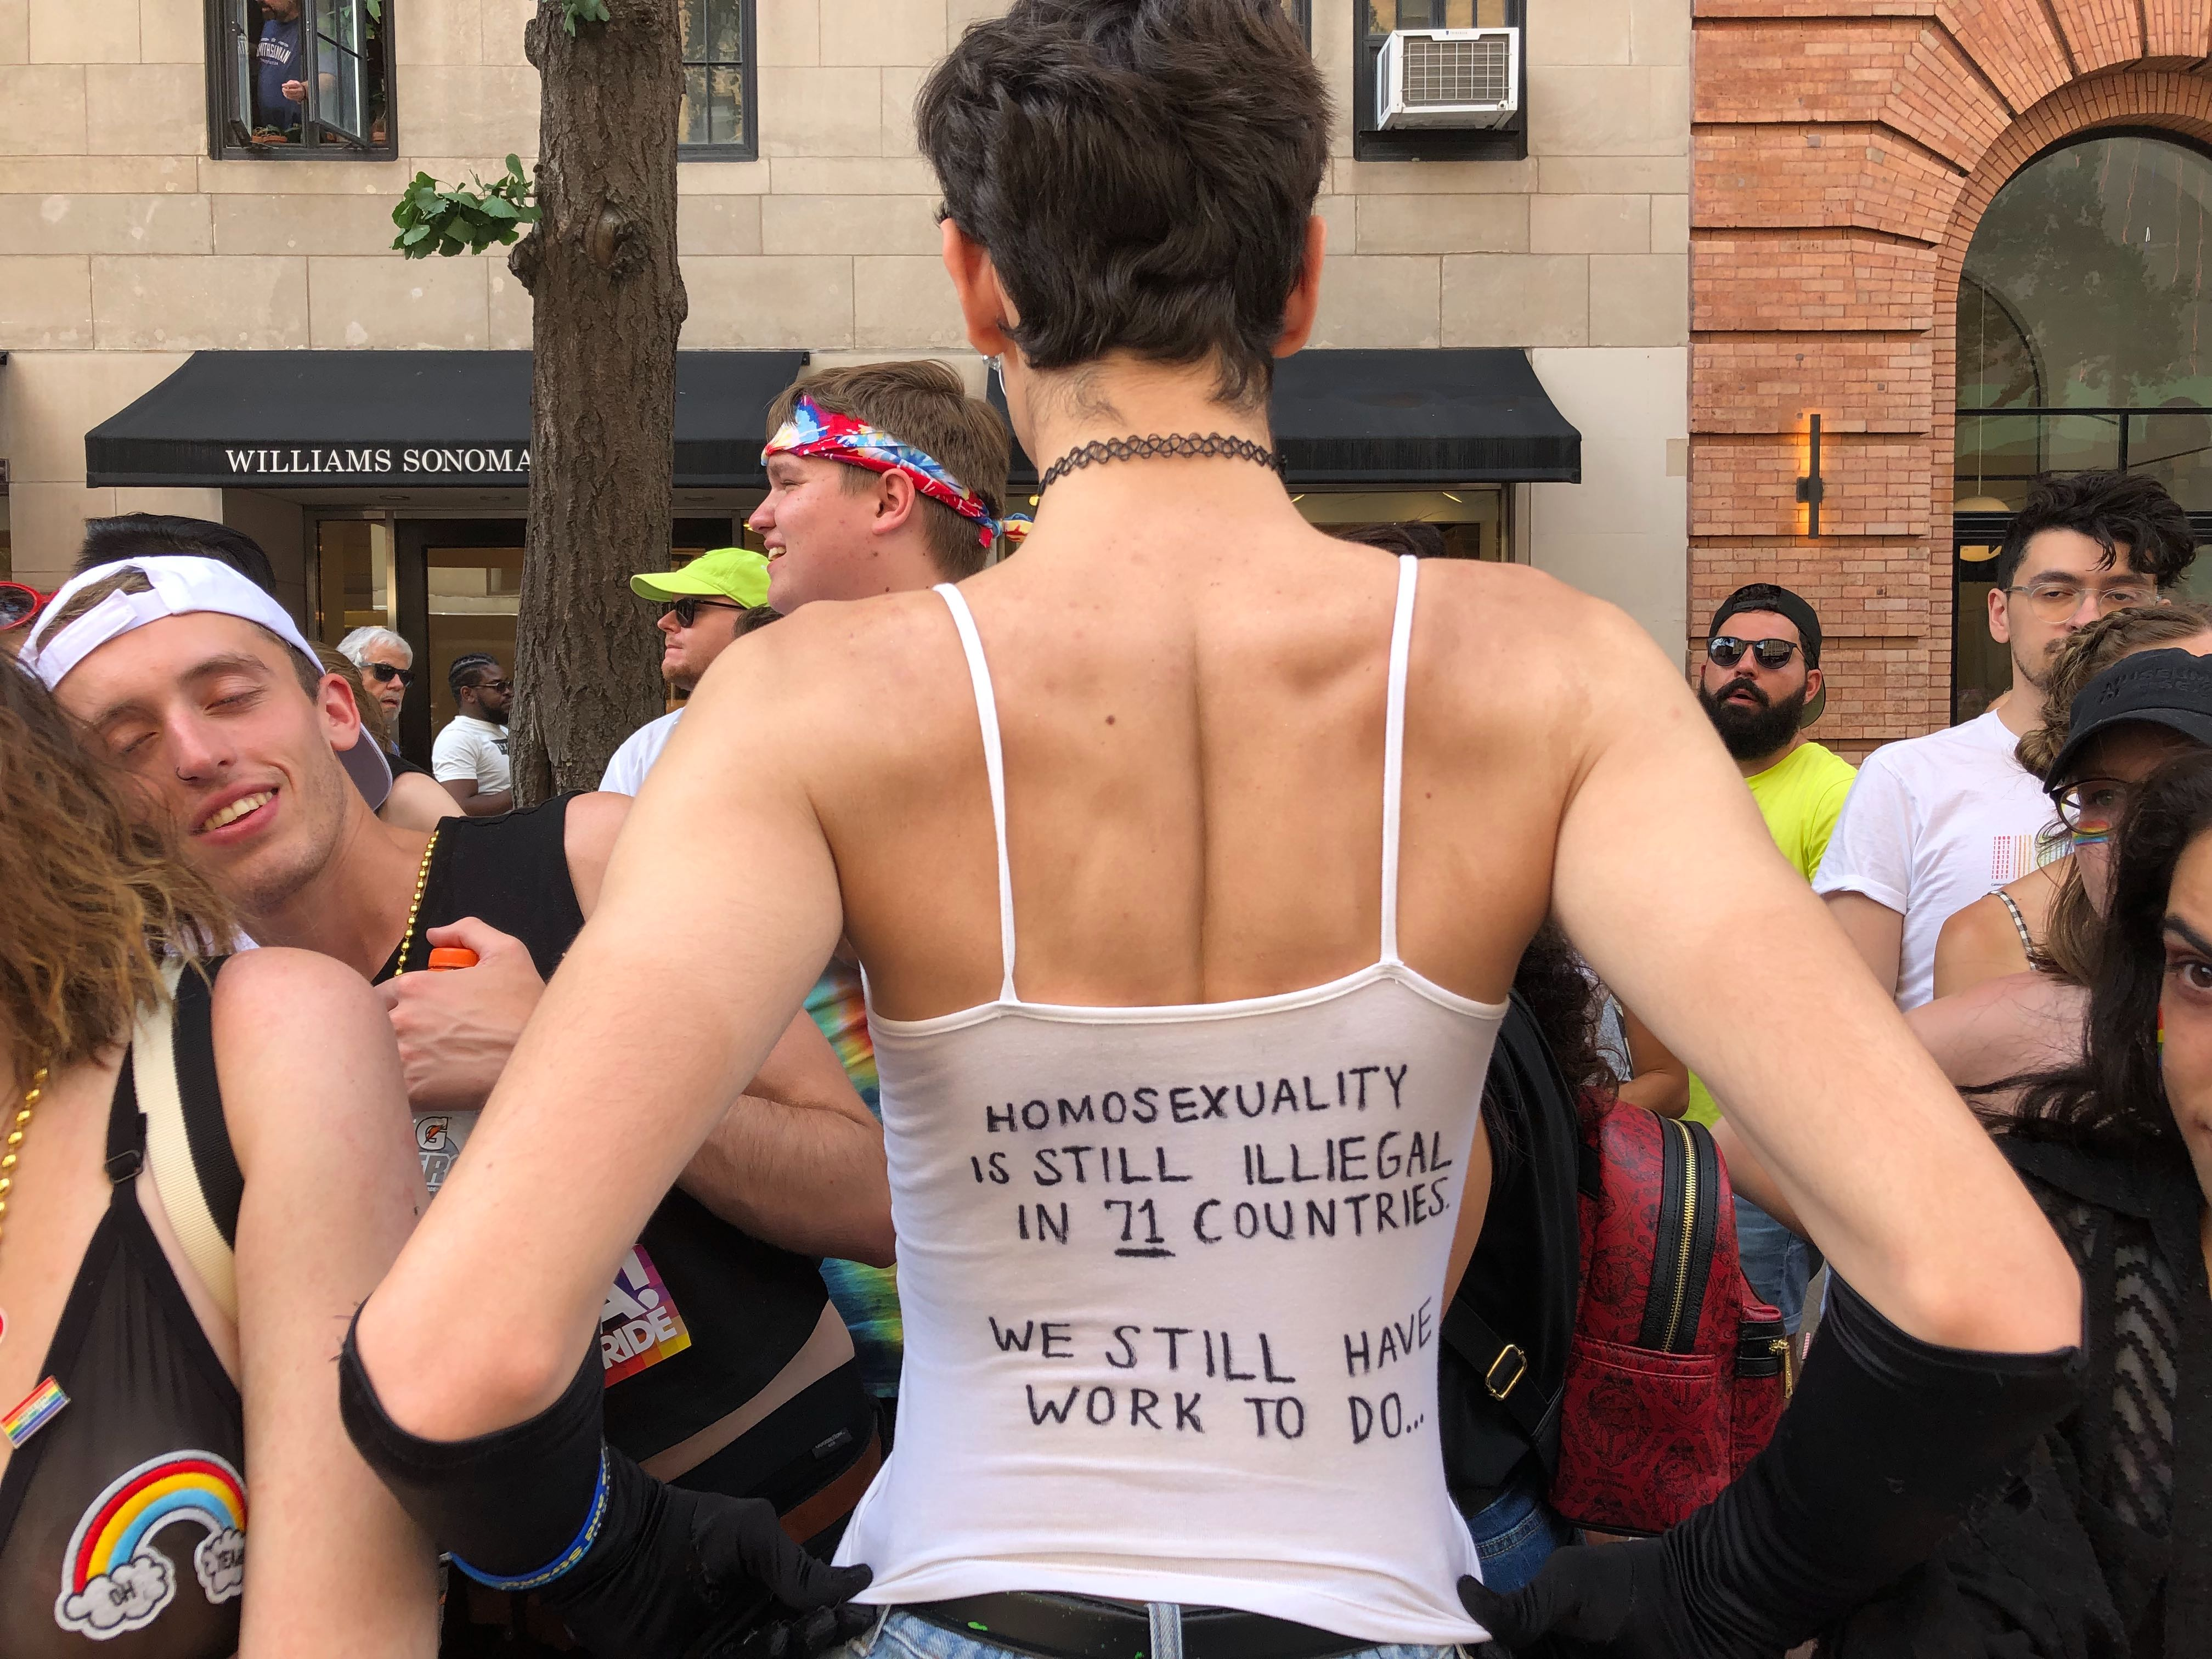 """The back of Stephen Carella's shirt reads """"Homosexuality is still illegal in 71 countries. We still have work to do."""""""